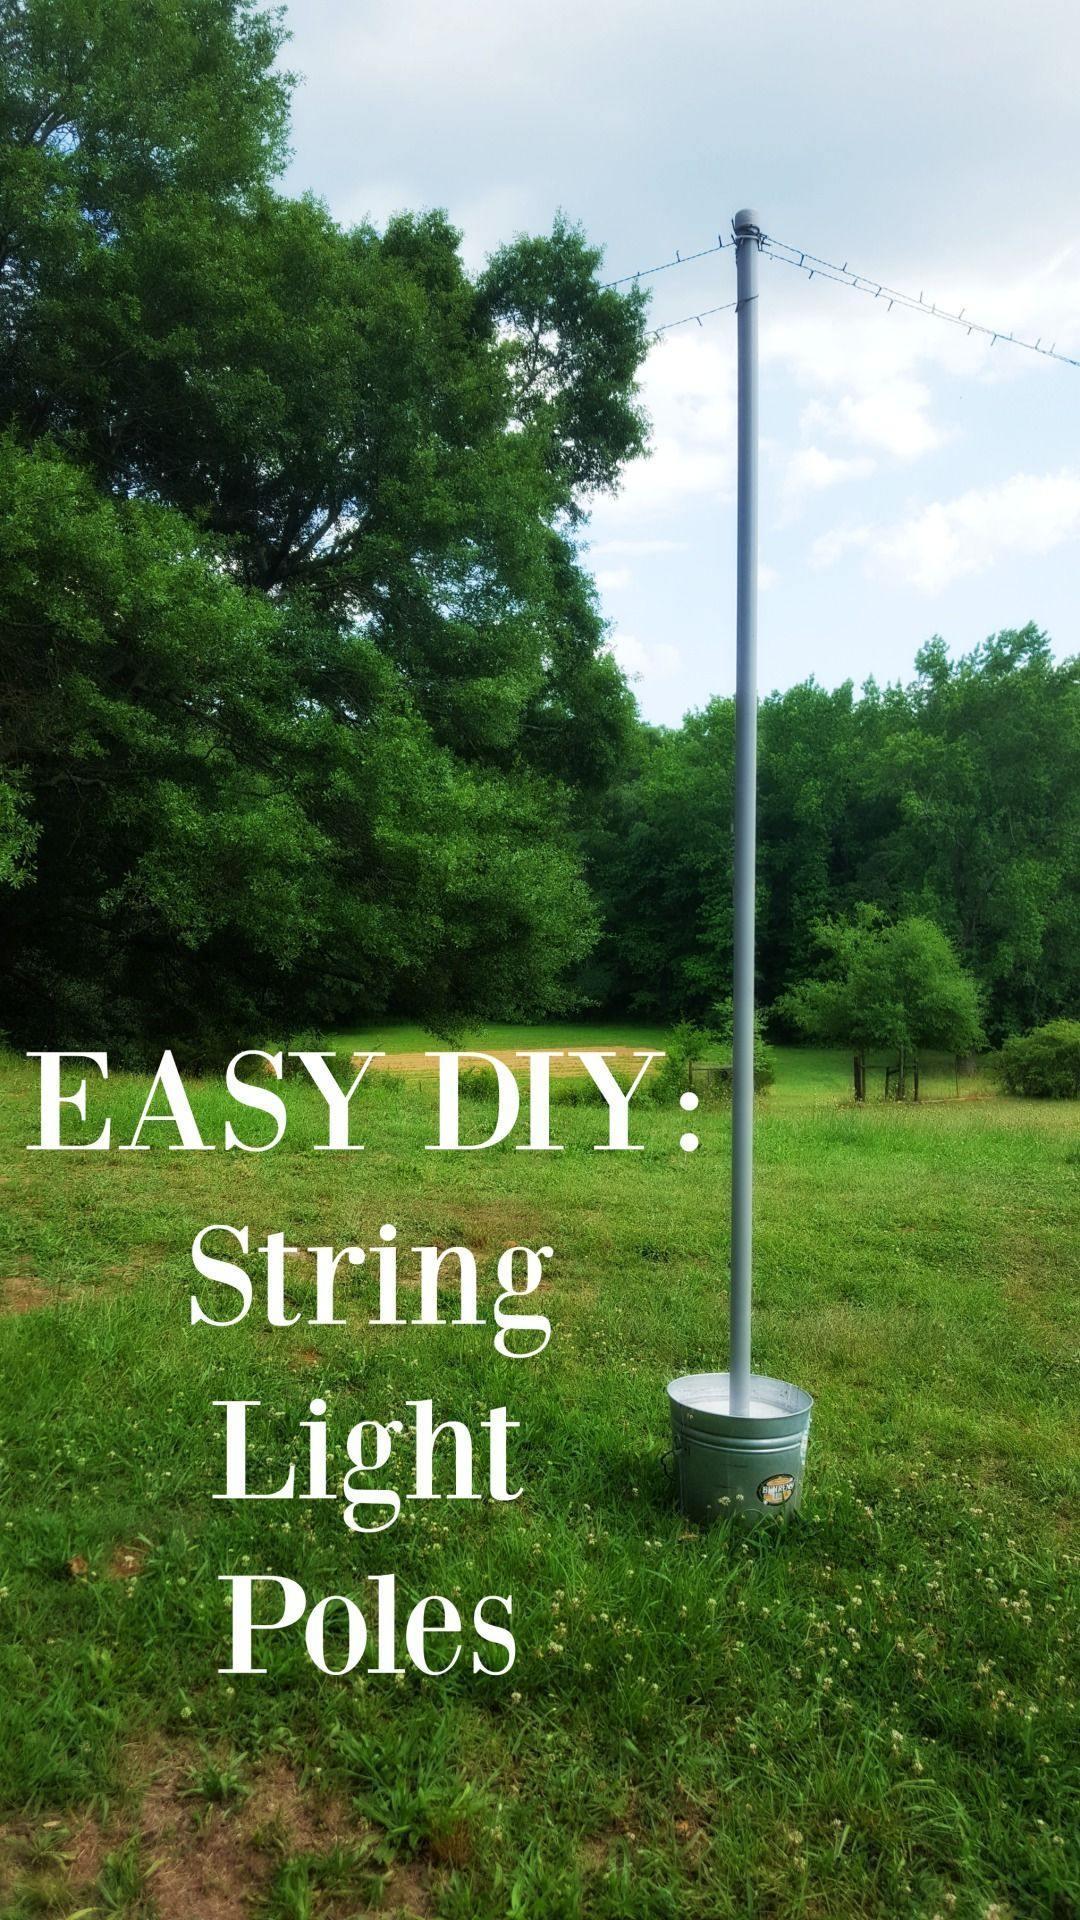 Mobile String Light Poles Easy DIY Easy Lights and Wedding